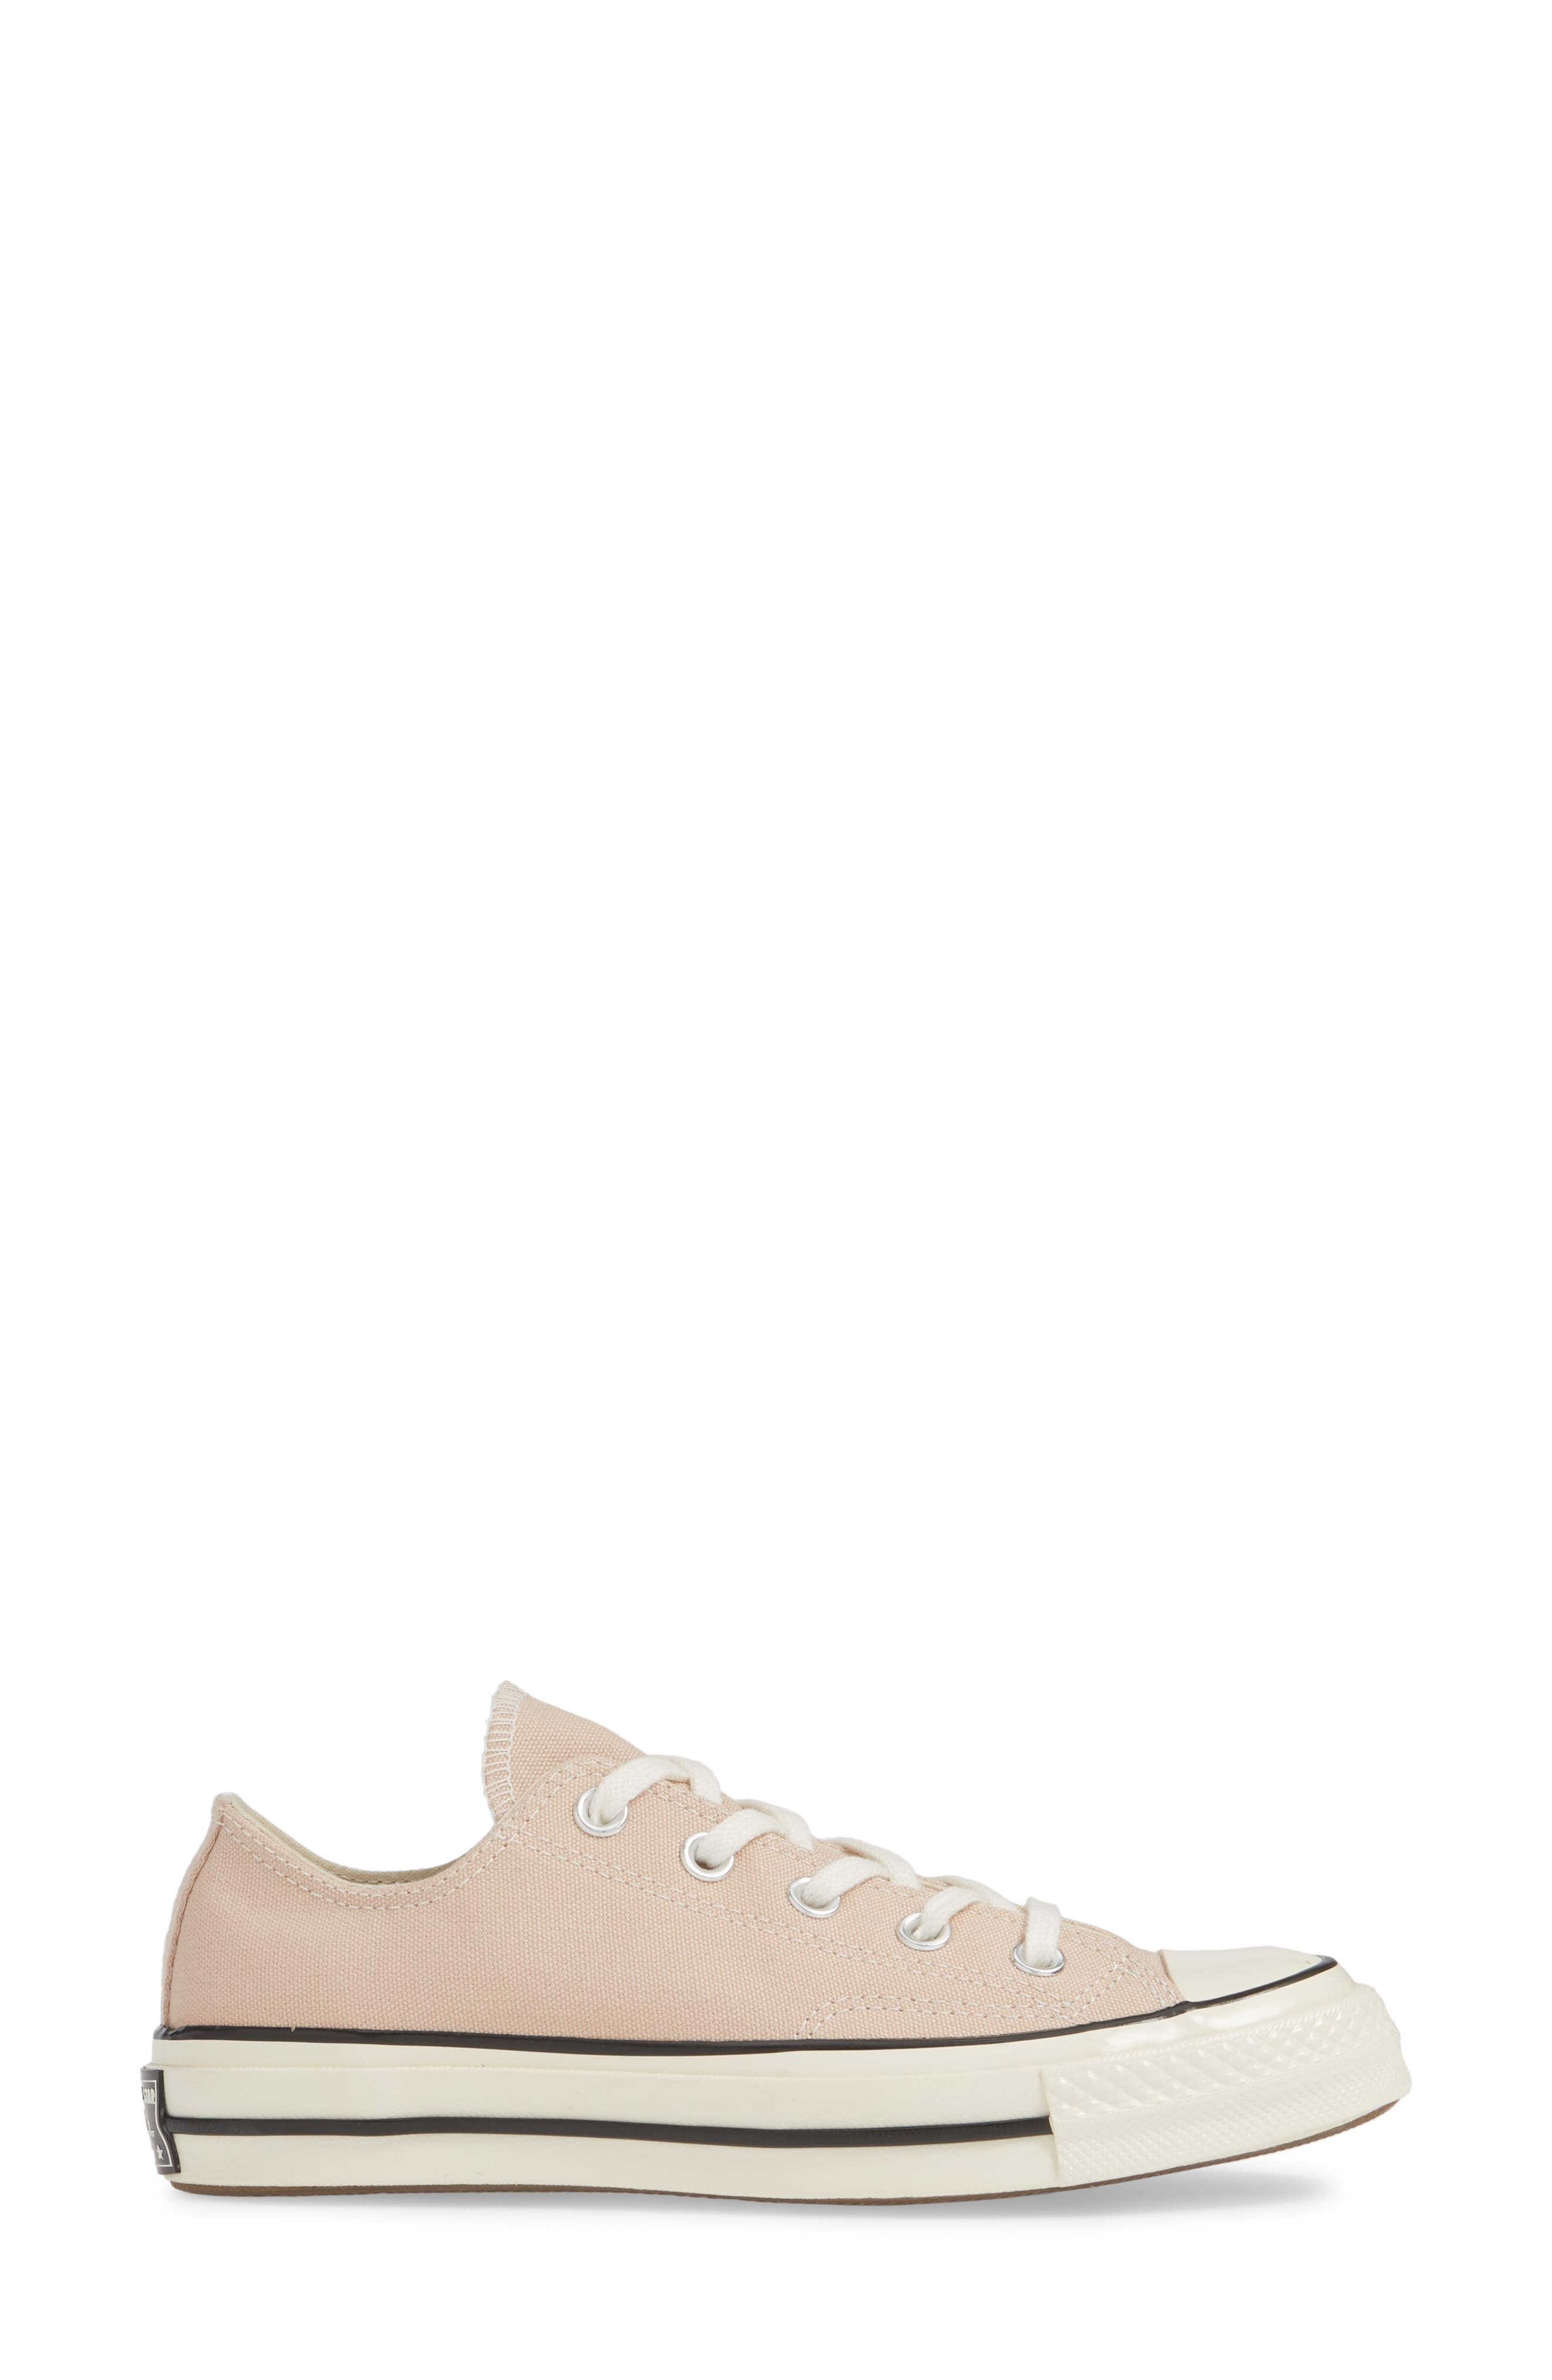 CONVERSE, Chuck Taylor<sup>®</sup> All Star<sup>®</sup> Chuck 70 Ox Sneaker, Alternate thumbnail 3, color, PARTICLE BEIGE/ BLACK/ EGRET